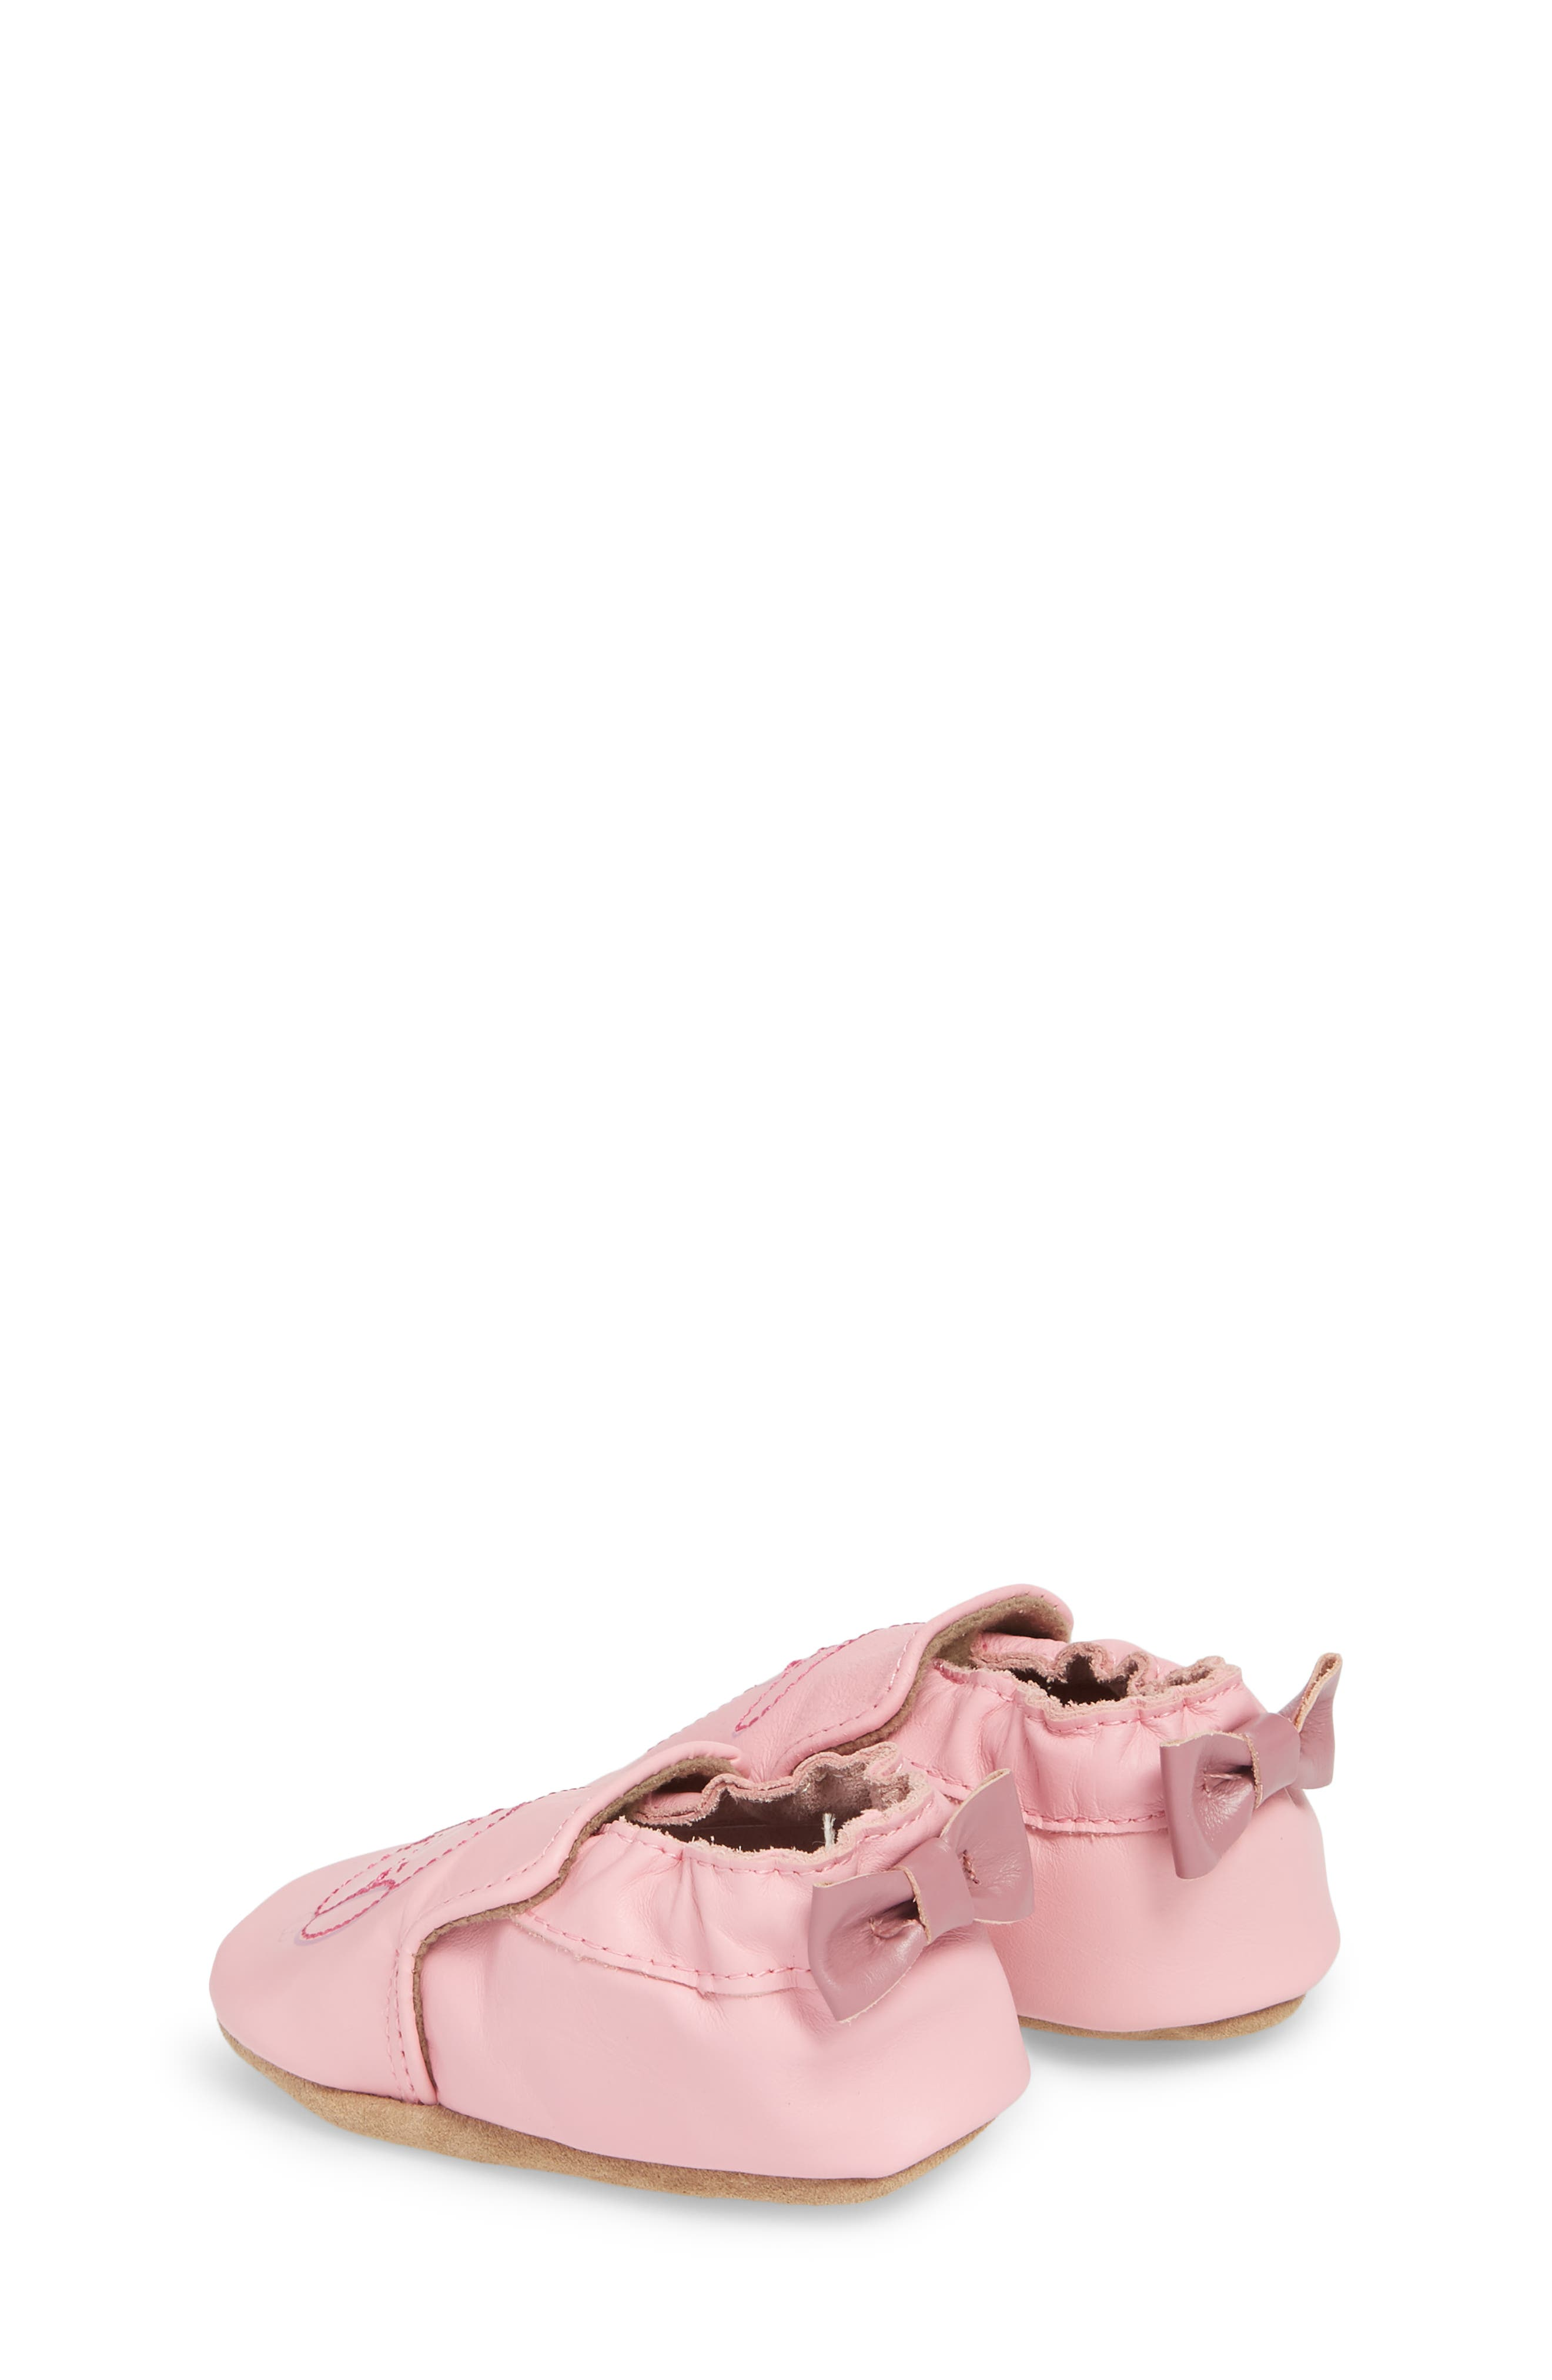 Sweet Bunny Moccasin Crib Shoe,                             Alternate thumbnail 2, color,                             PASTEL PINK